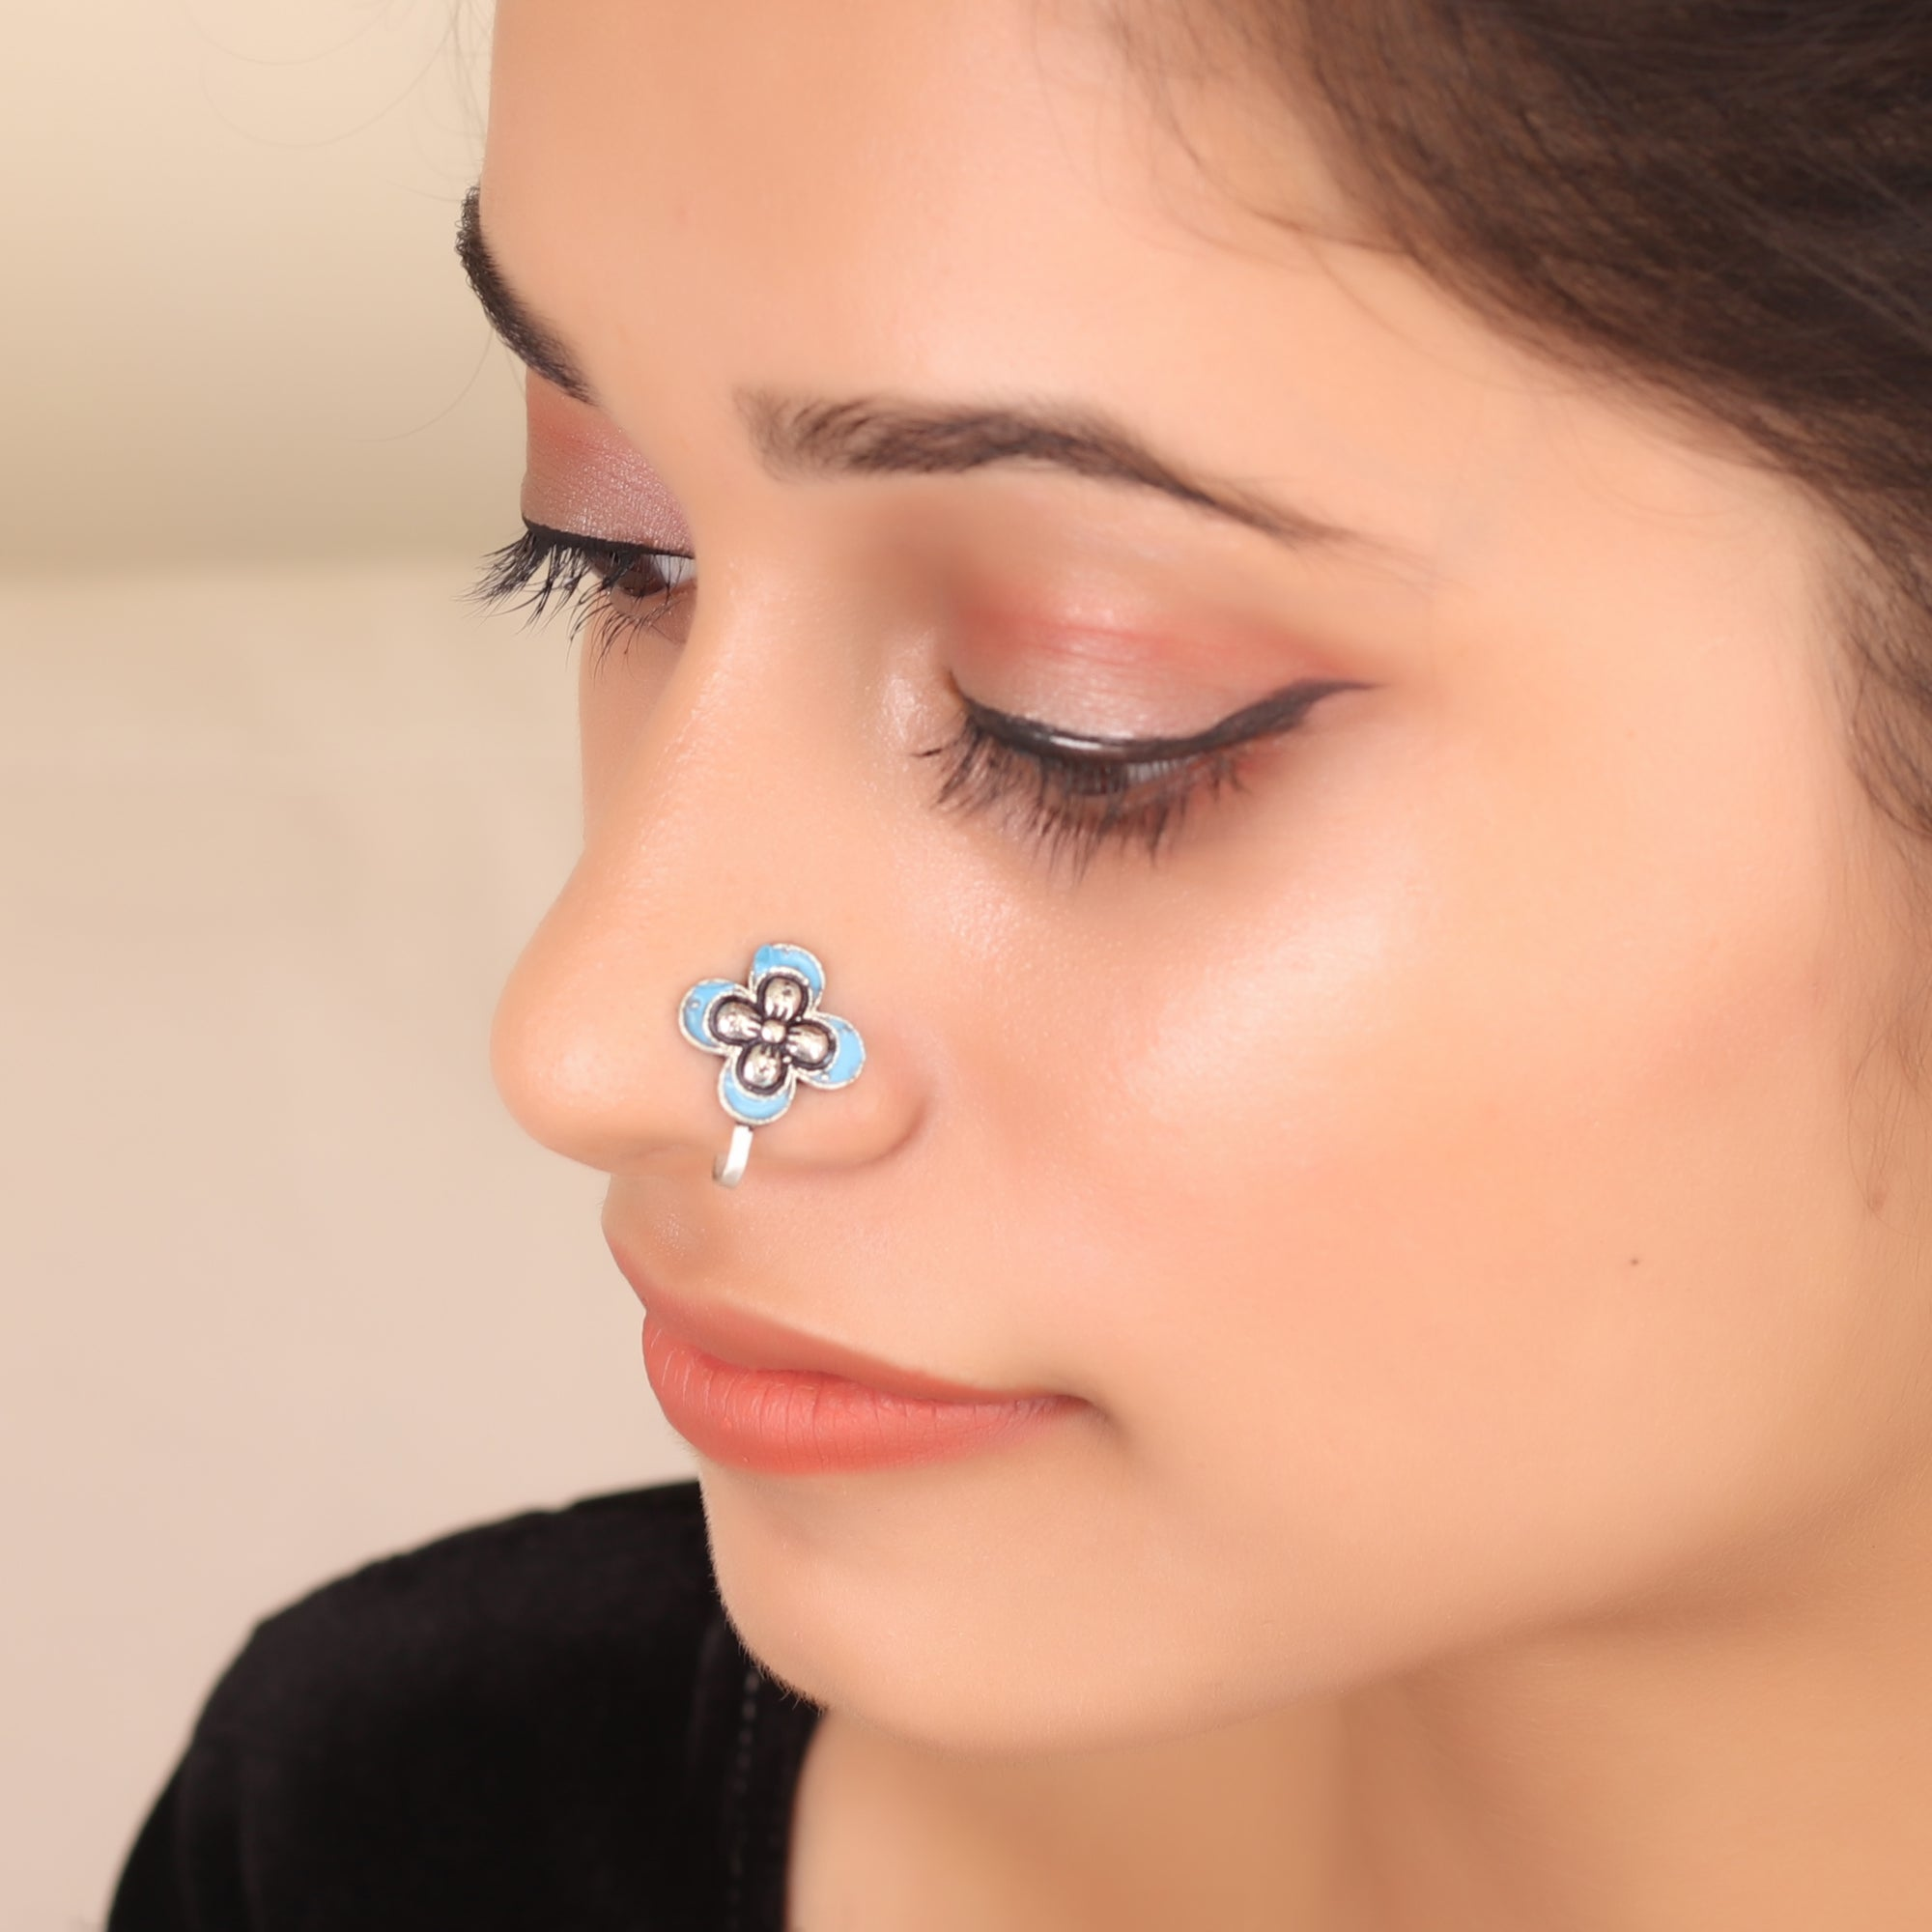 The Butterfly Nose Pin in Sky Blue